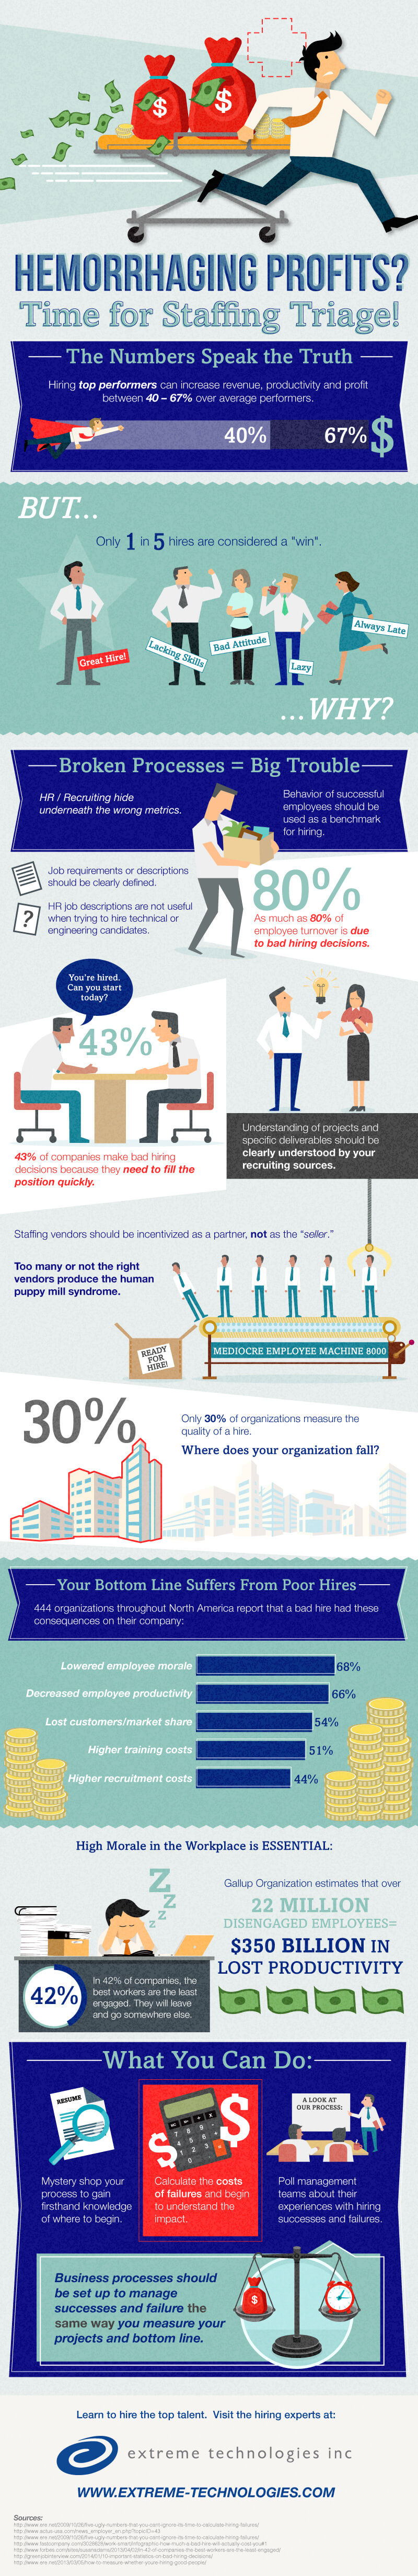 triage-to-stop-hemorrhaging-profits-infographic-plaza